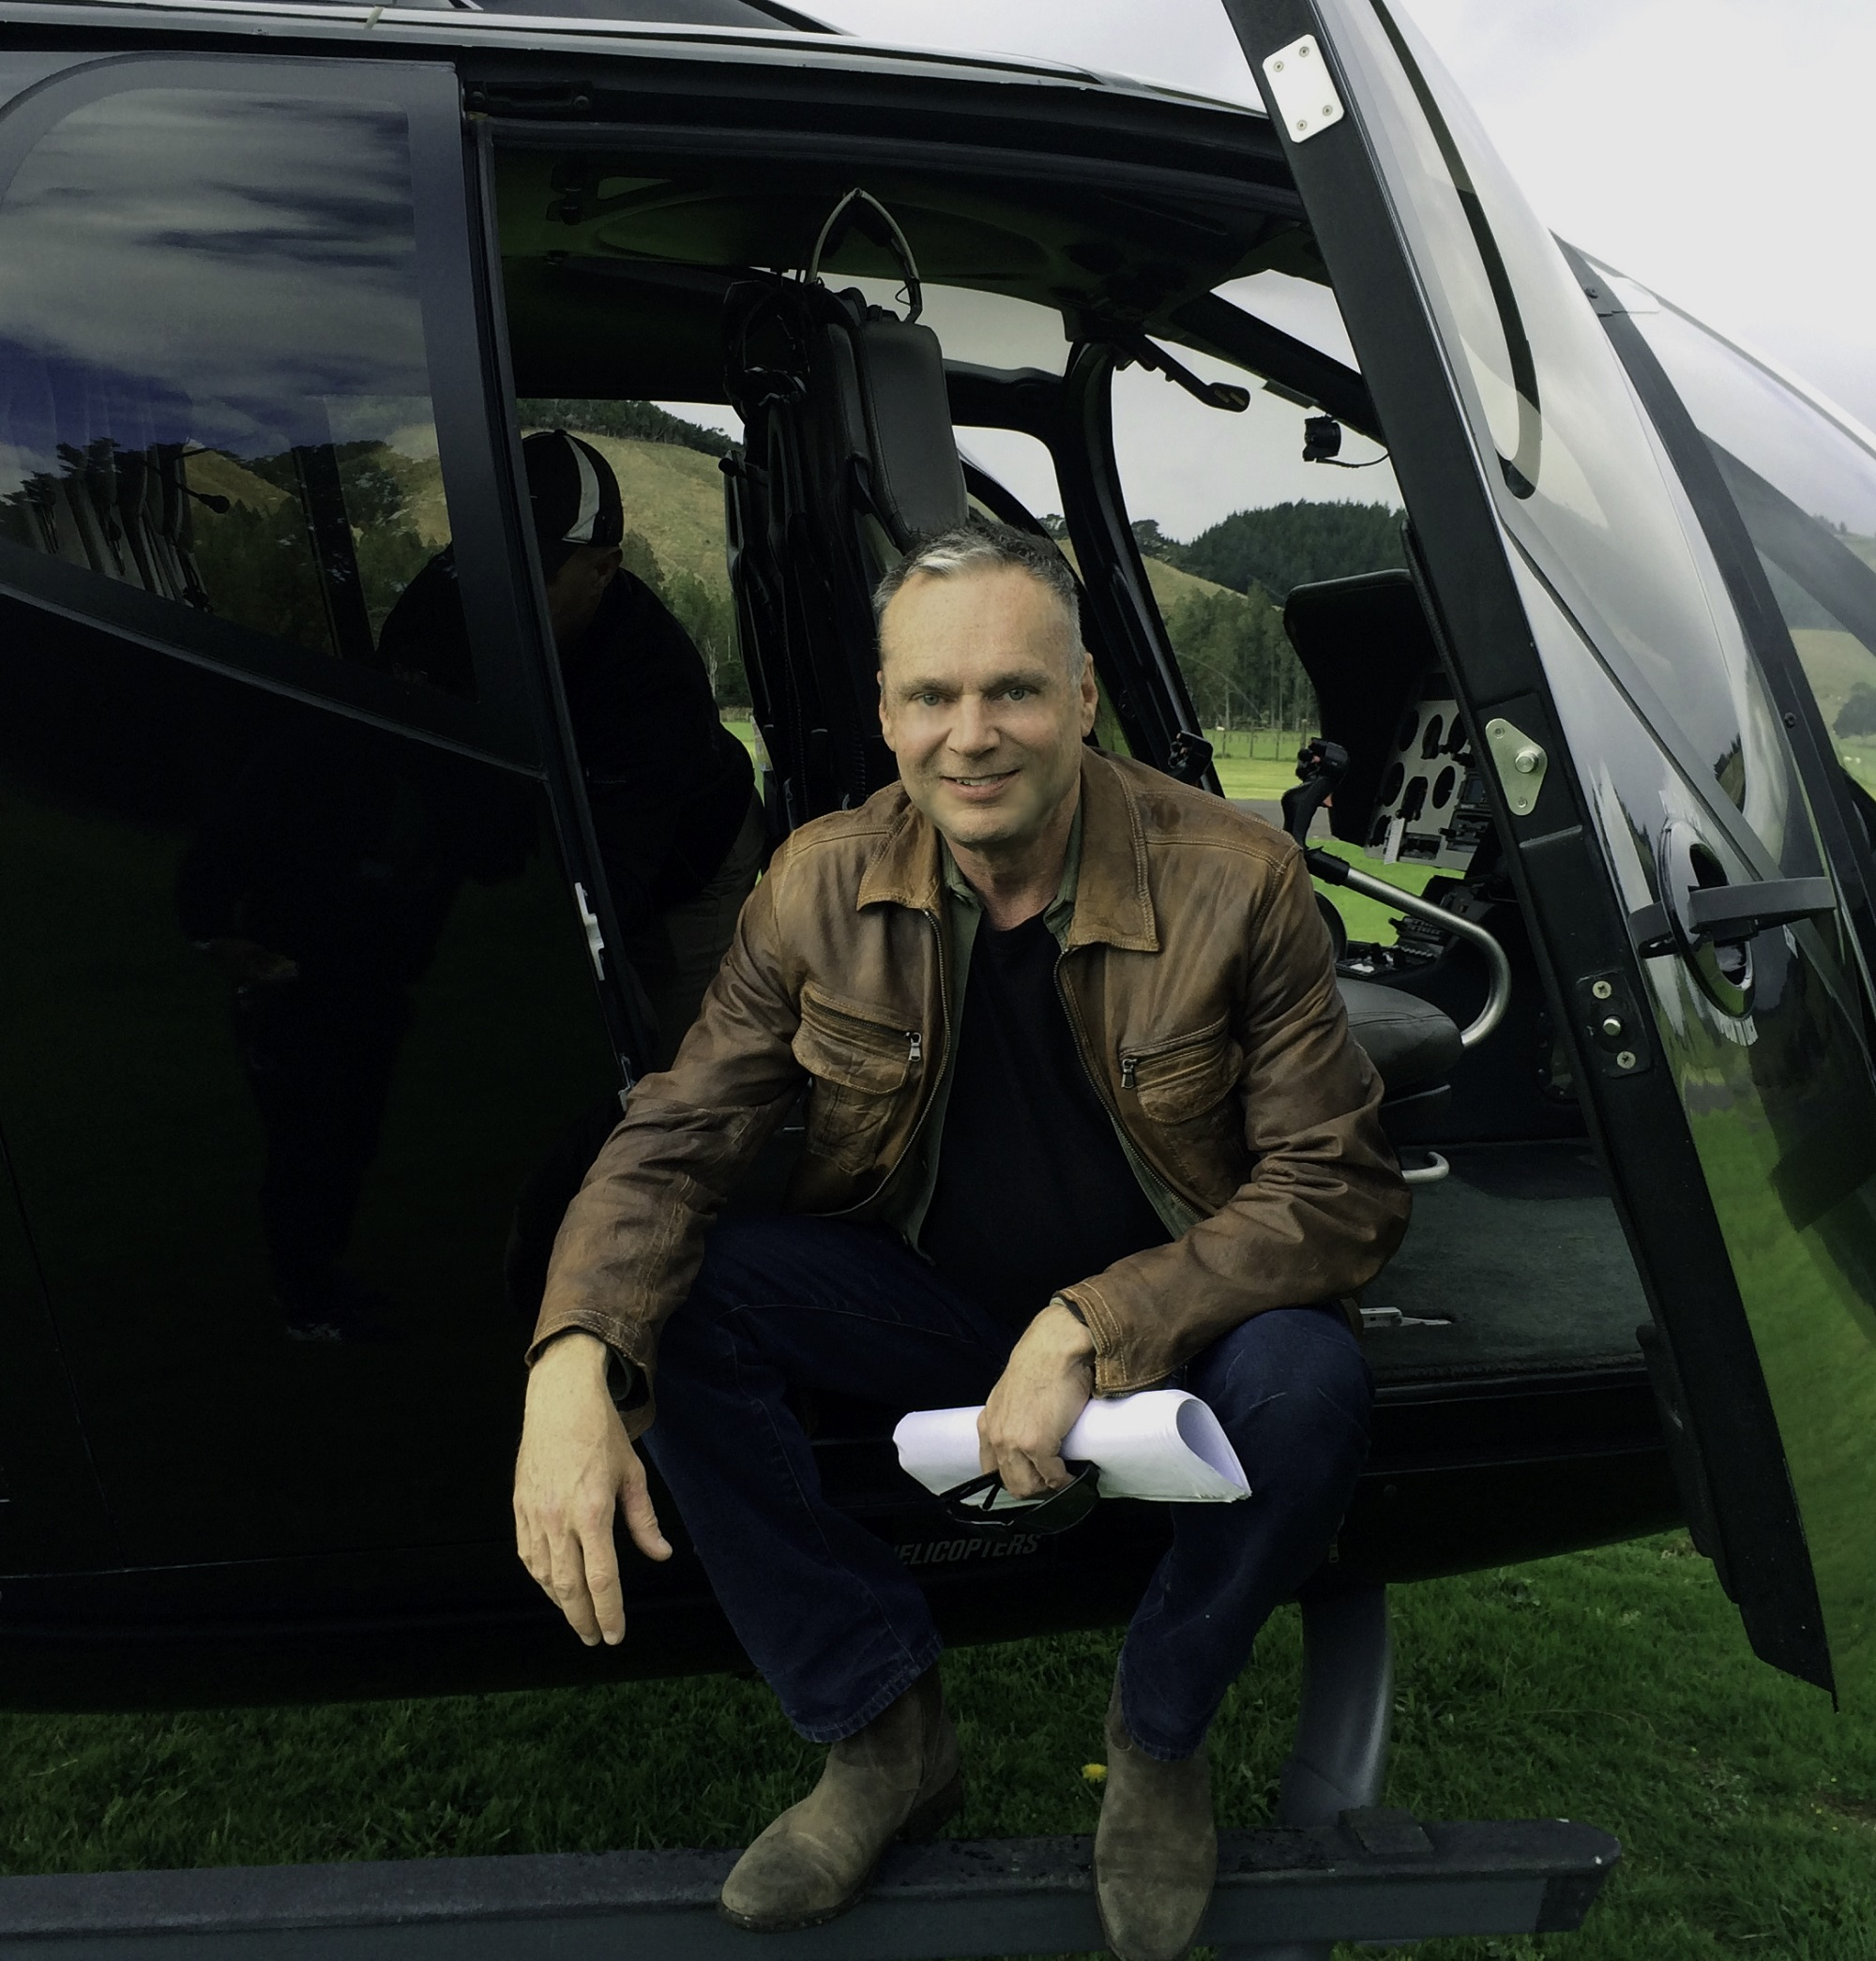 Picture of Jess Bushyhead in a helicopter after a tour in New Zealand.